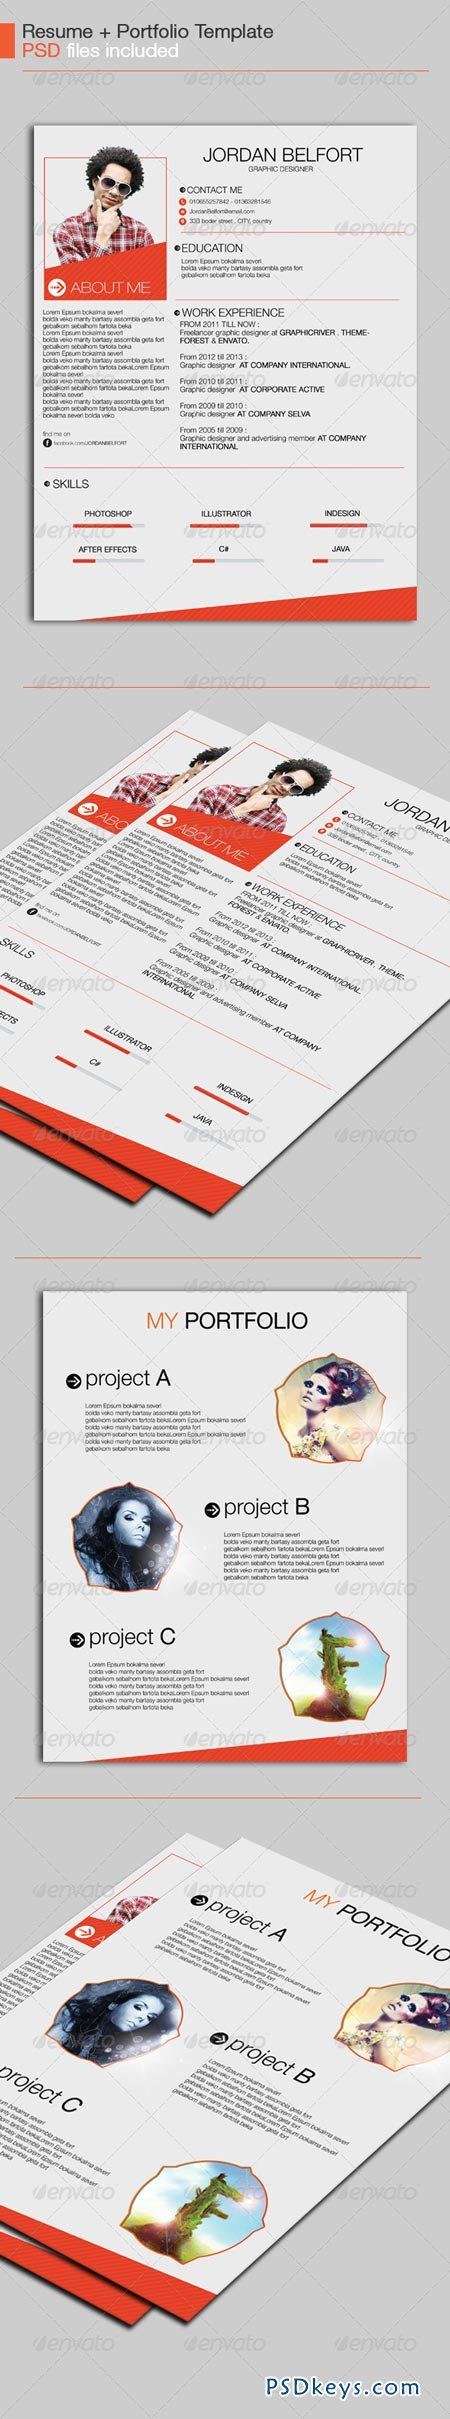 Resume Template   Free Download Photoshop Vector Stock Image